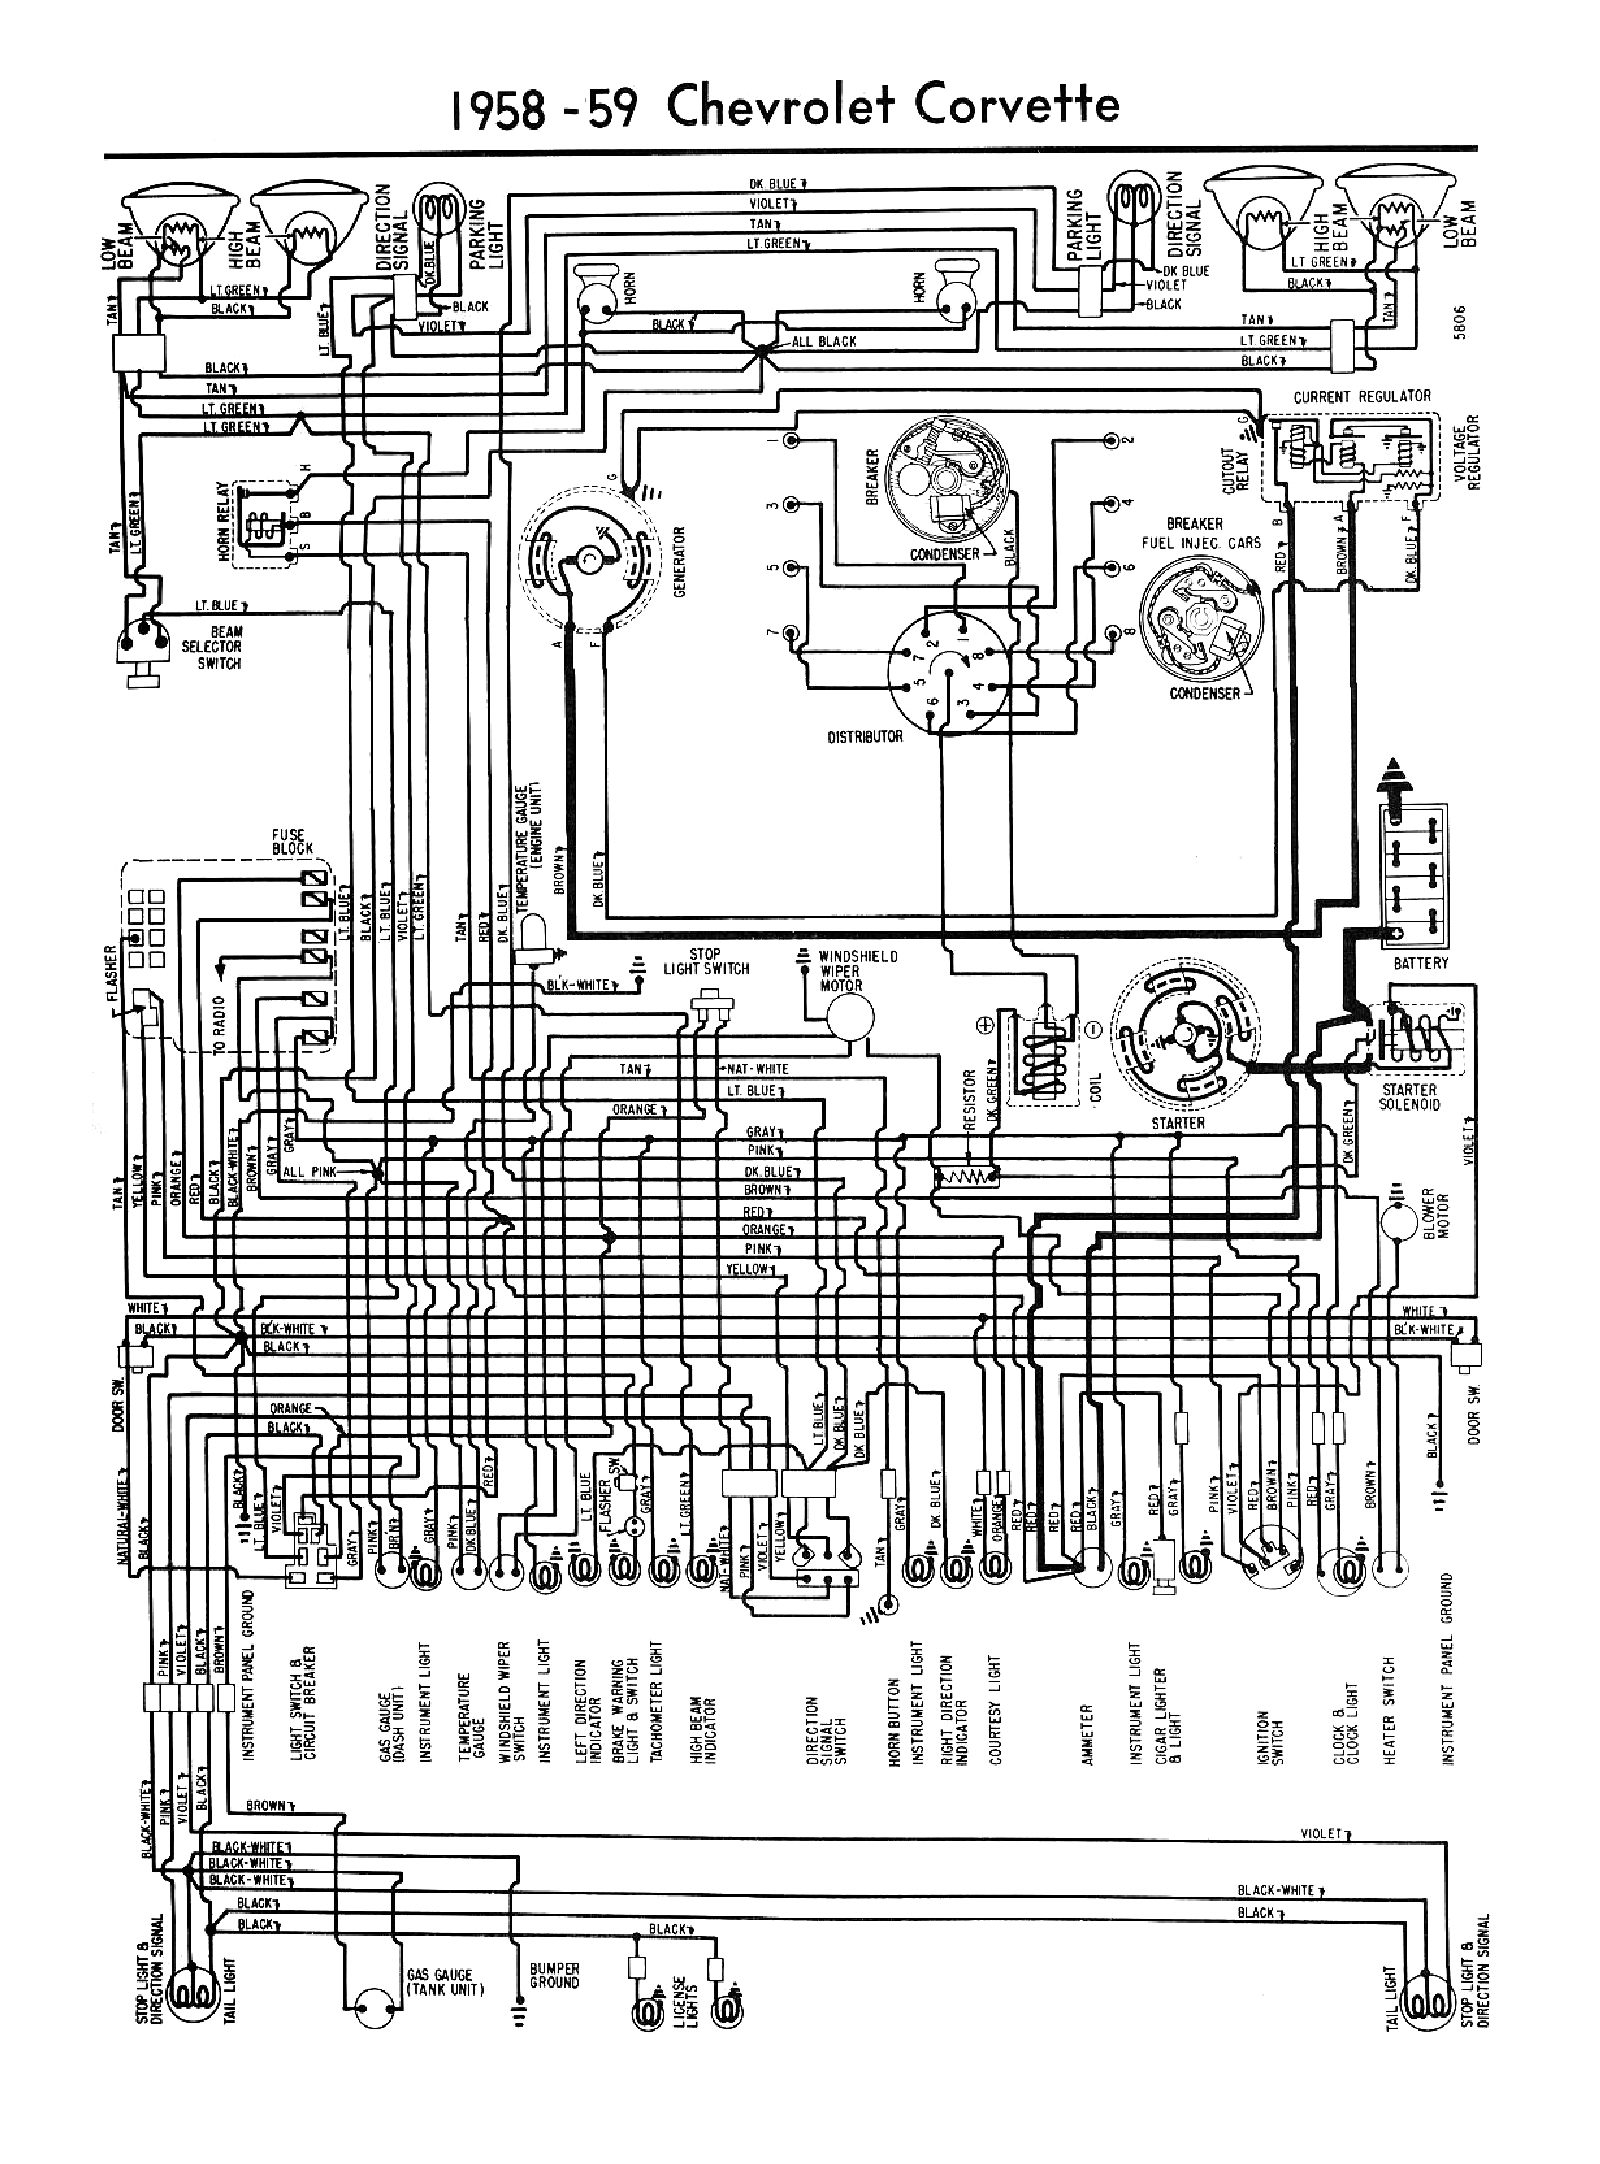 [XOTG_4463]  77 Corvette Wiring Diagram Free Download | Wiring Library | 1966 Corvette Wiring Diagram Pdf |  | 29.contrixx-artikel.de